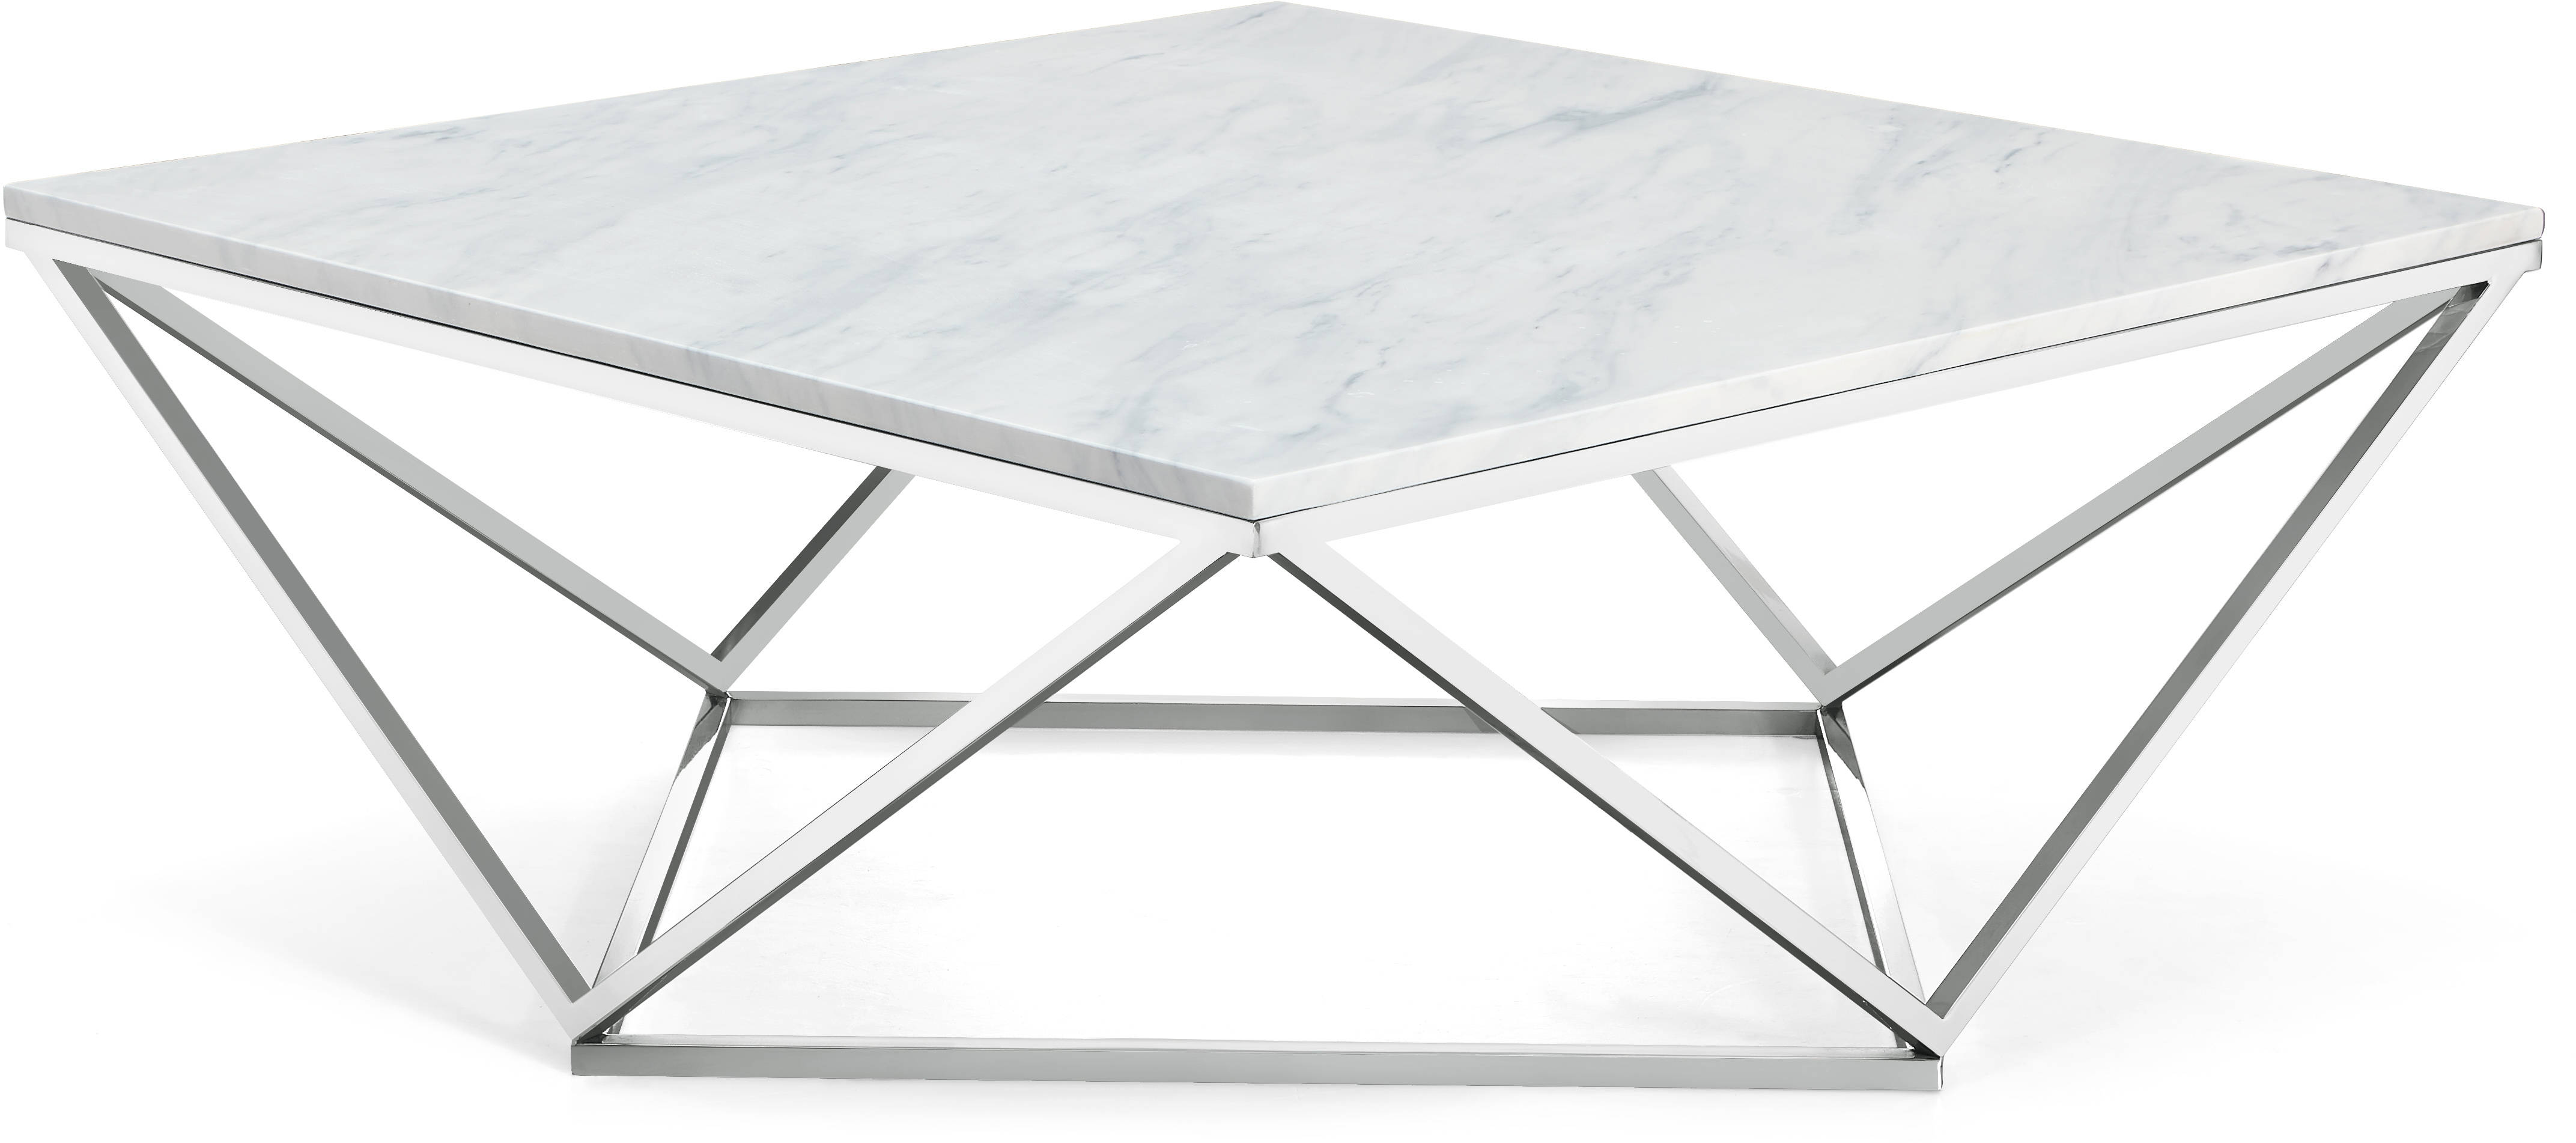 Skyler Marble Top Silver Chrome Stainless Steel Base Coffee Table